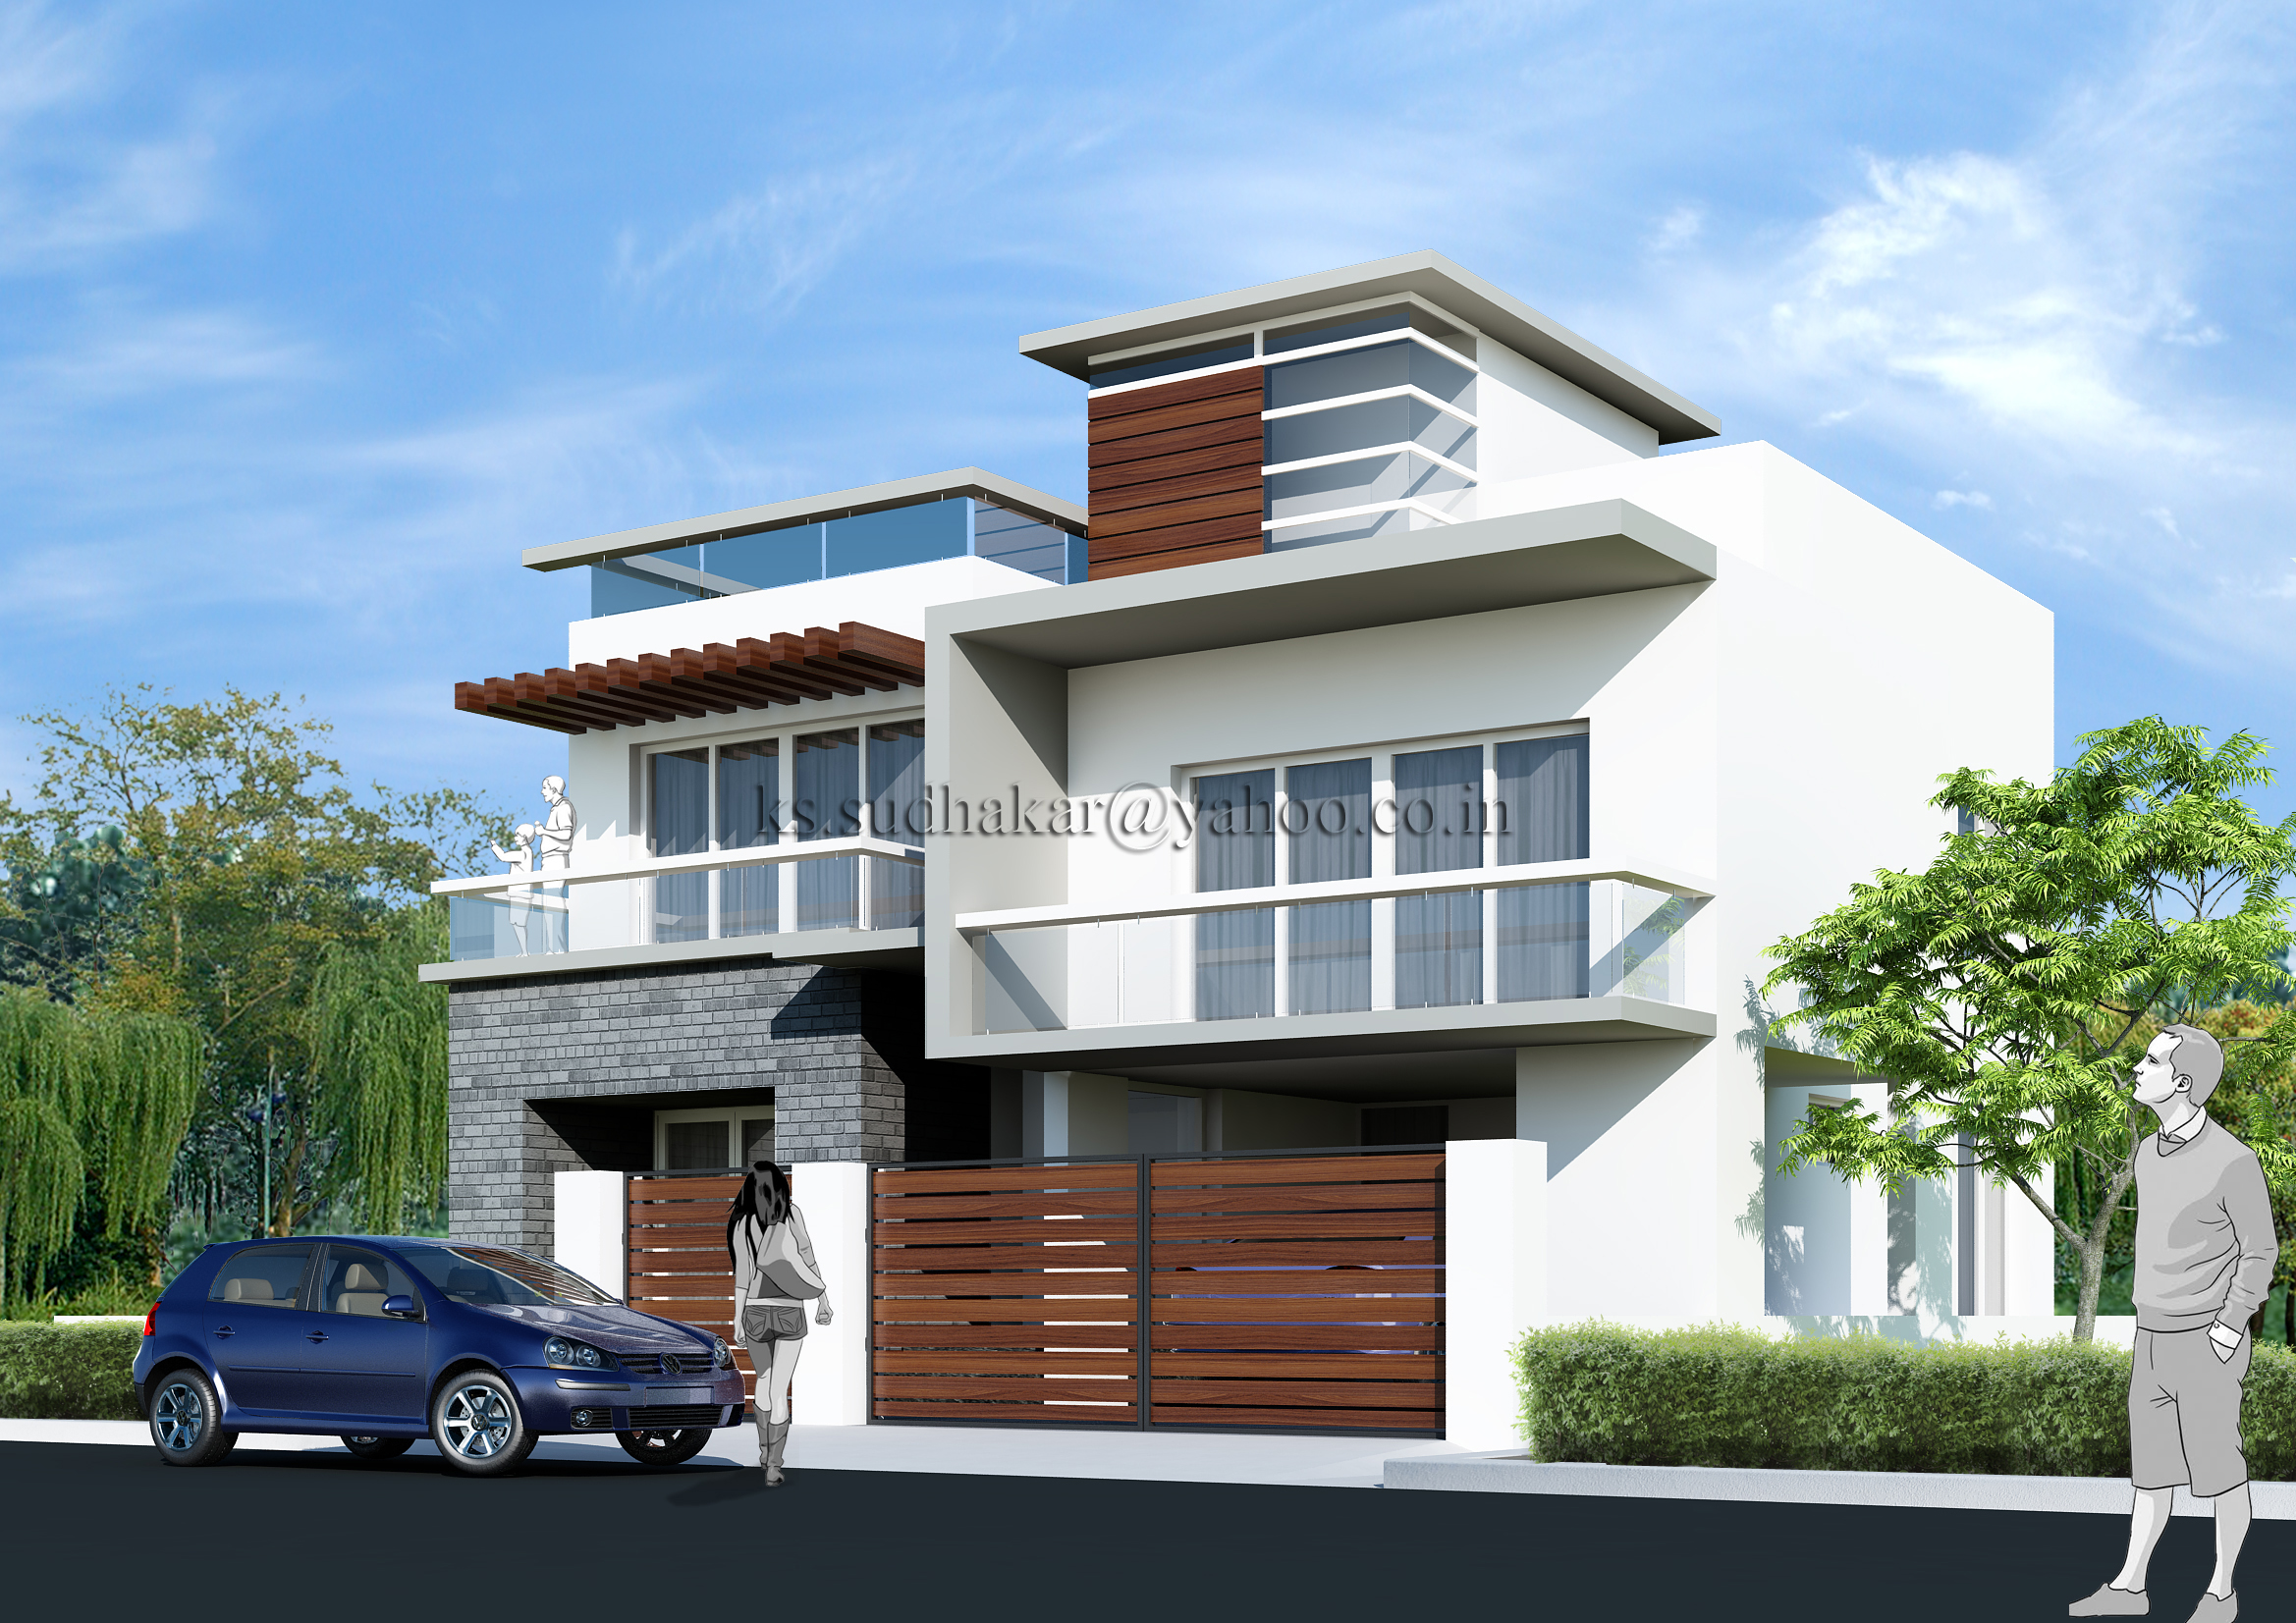 Residential Bungalow Part - 48: QView Full Size. Exterior Renderings - Residential Bungalow